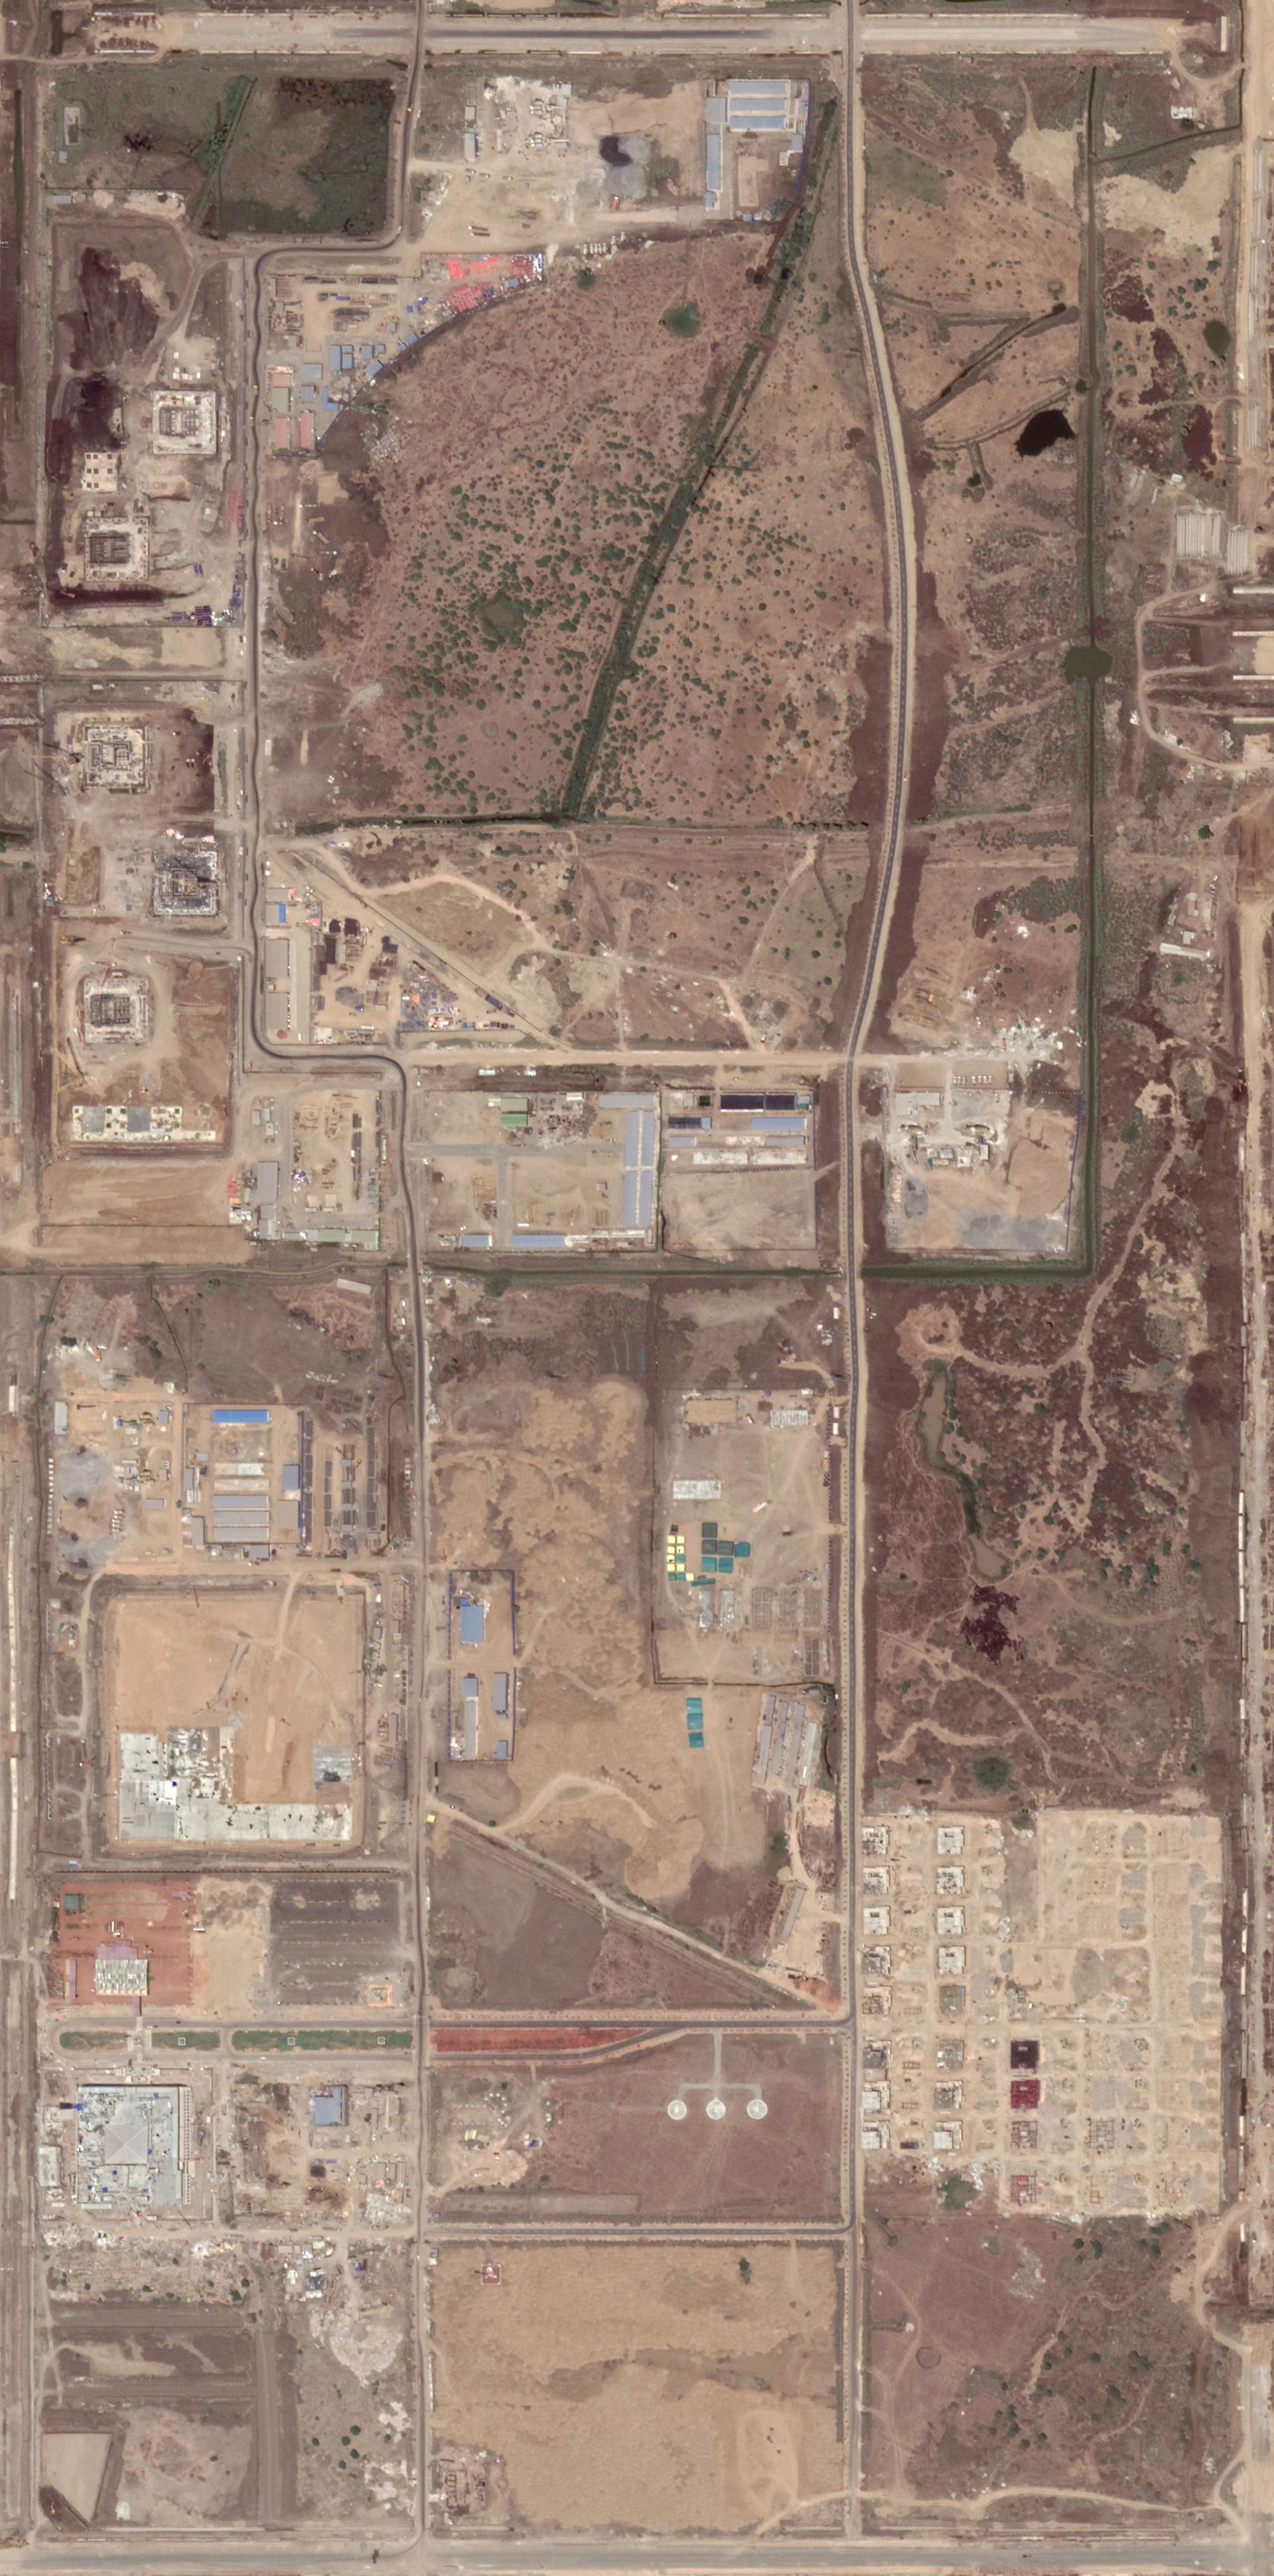 Fan_Xinkai_satellite-20190413-GoogleEarth